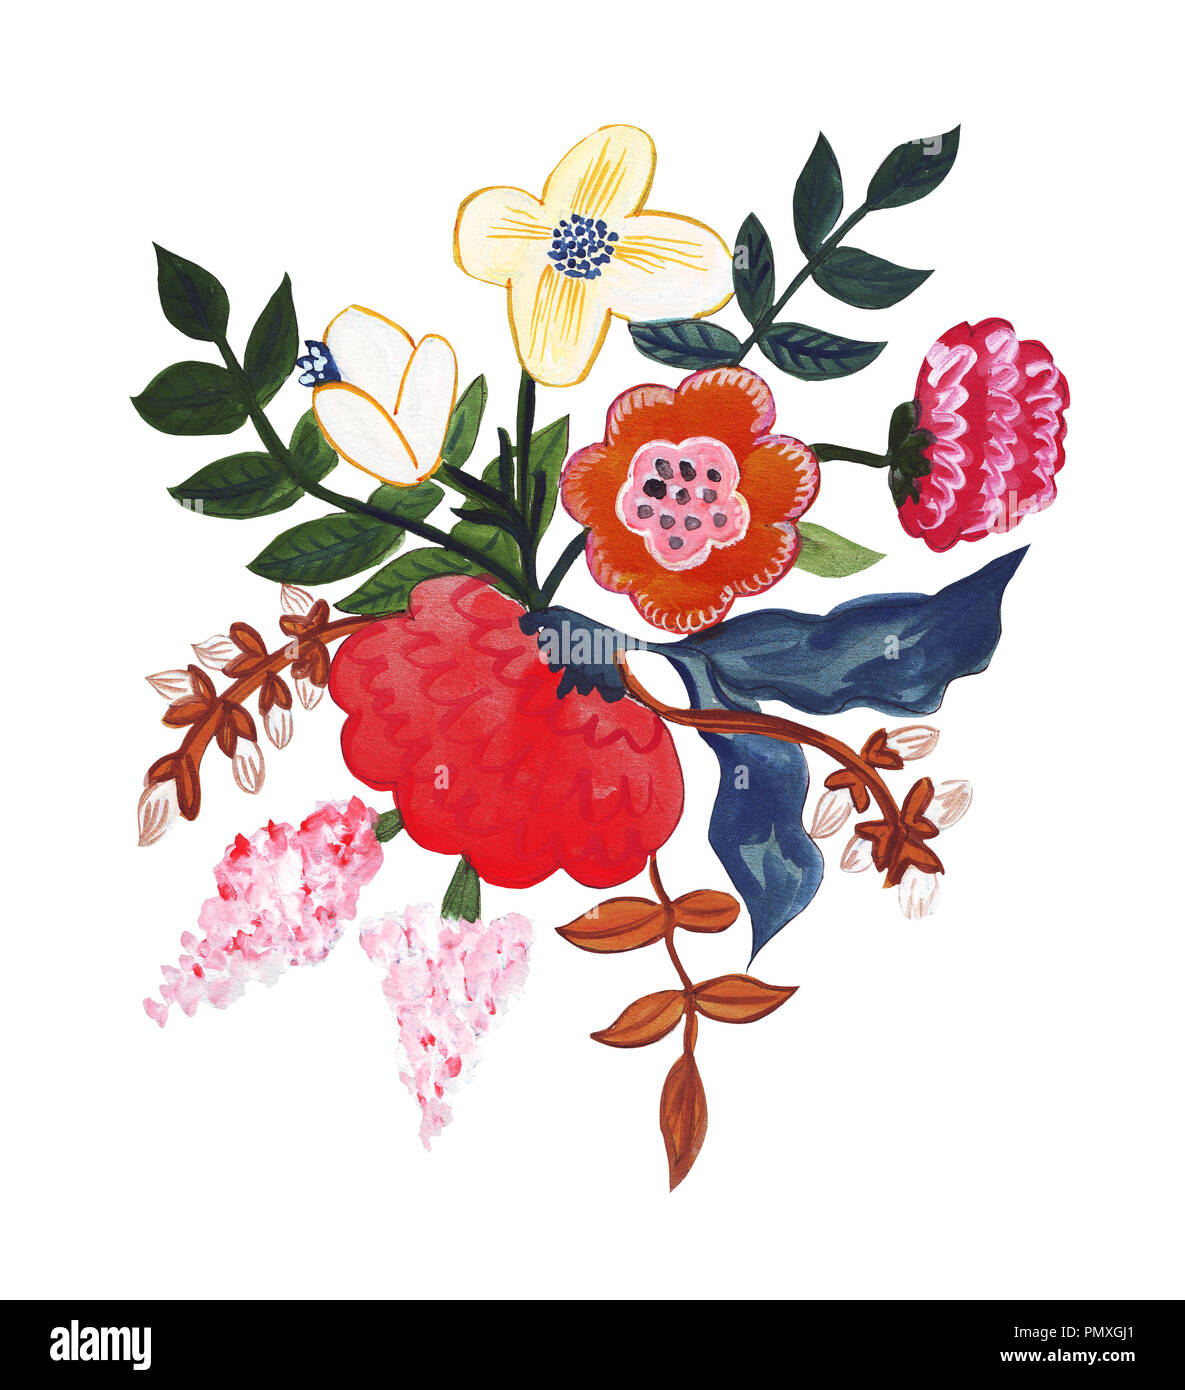 Illustration Of Pencil Drawing Bouquet Flowers In Bright Colors For